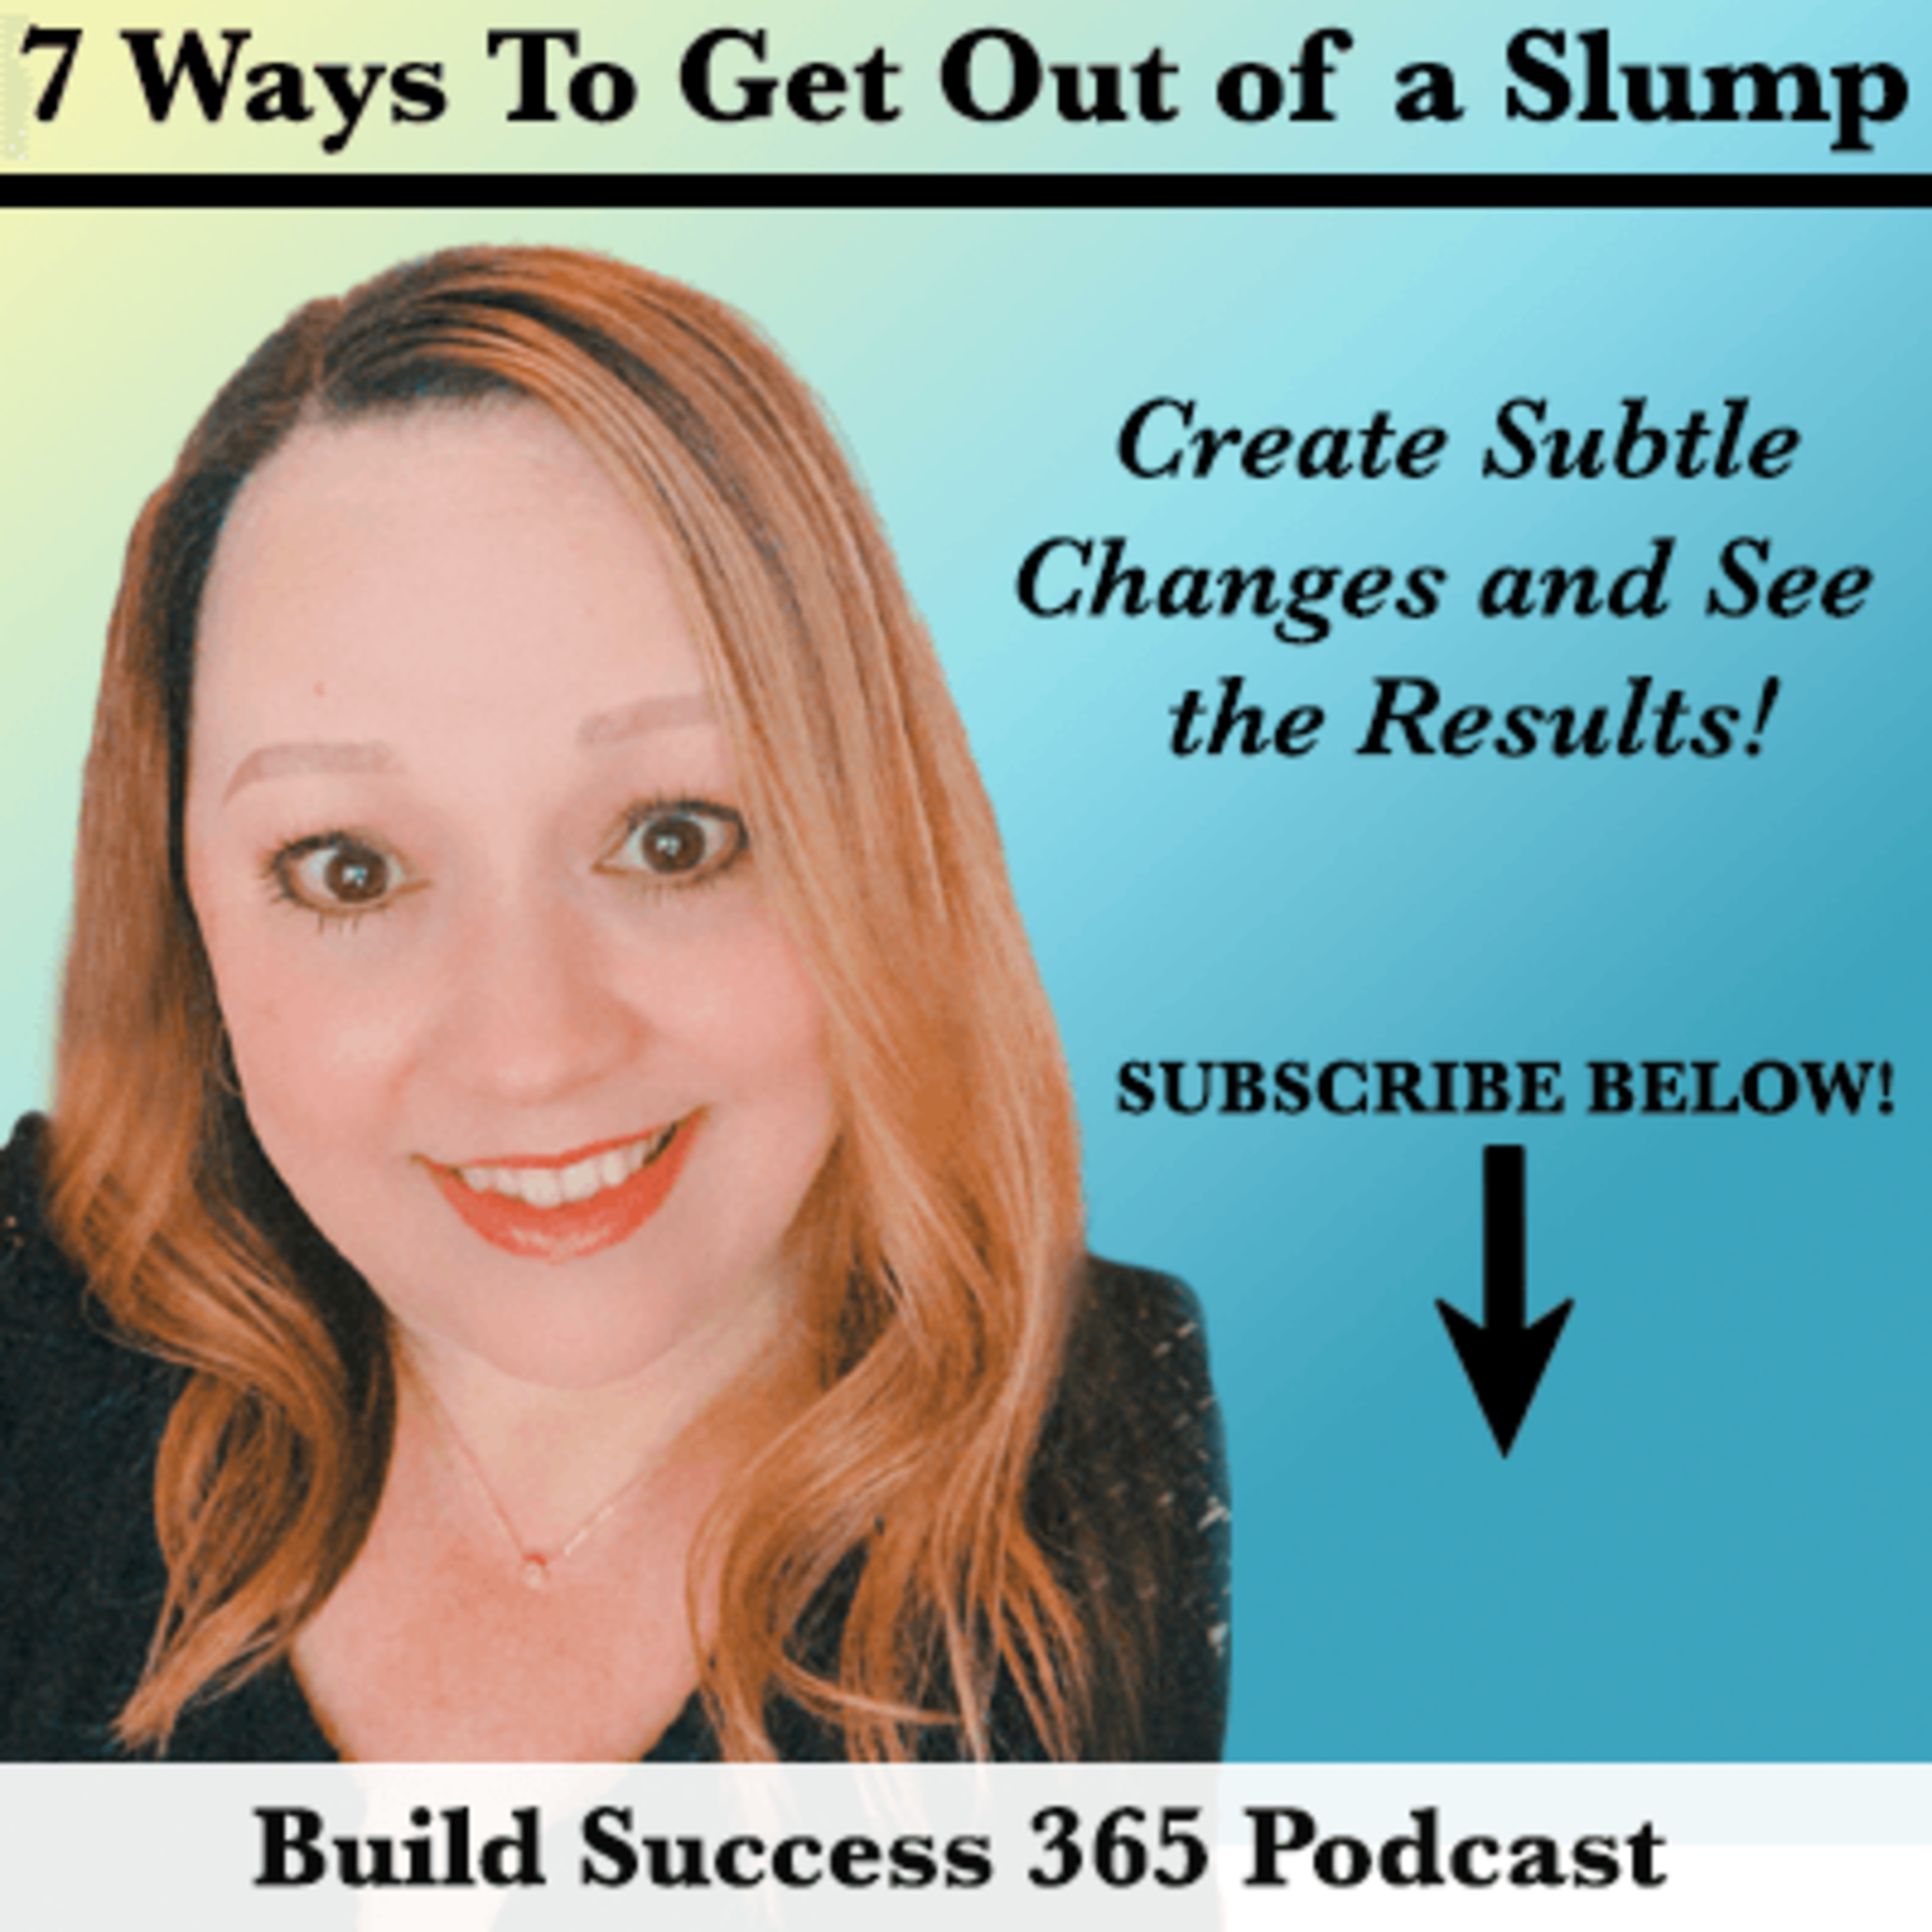 7 Ways To Get Out of a Slump